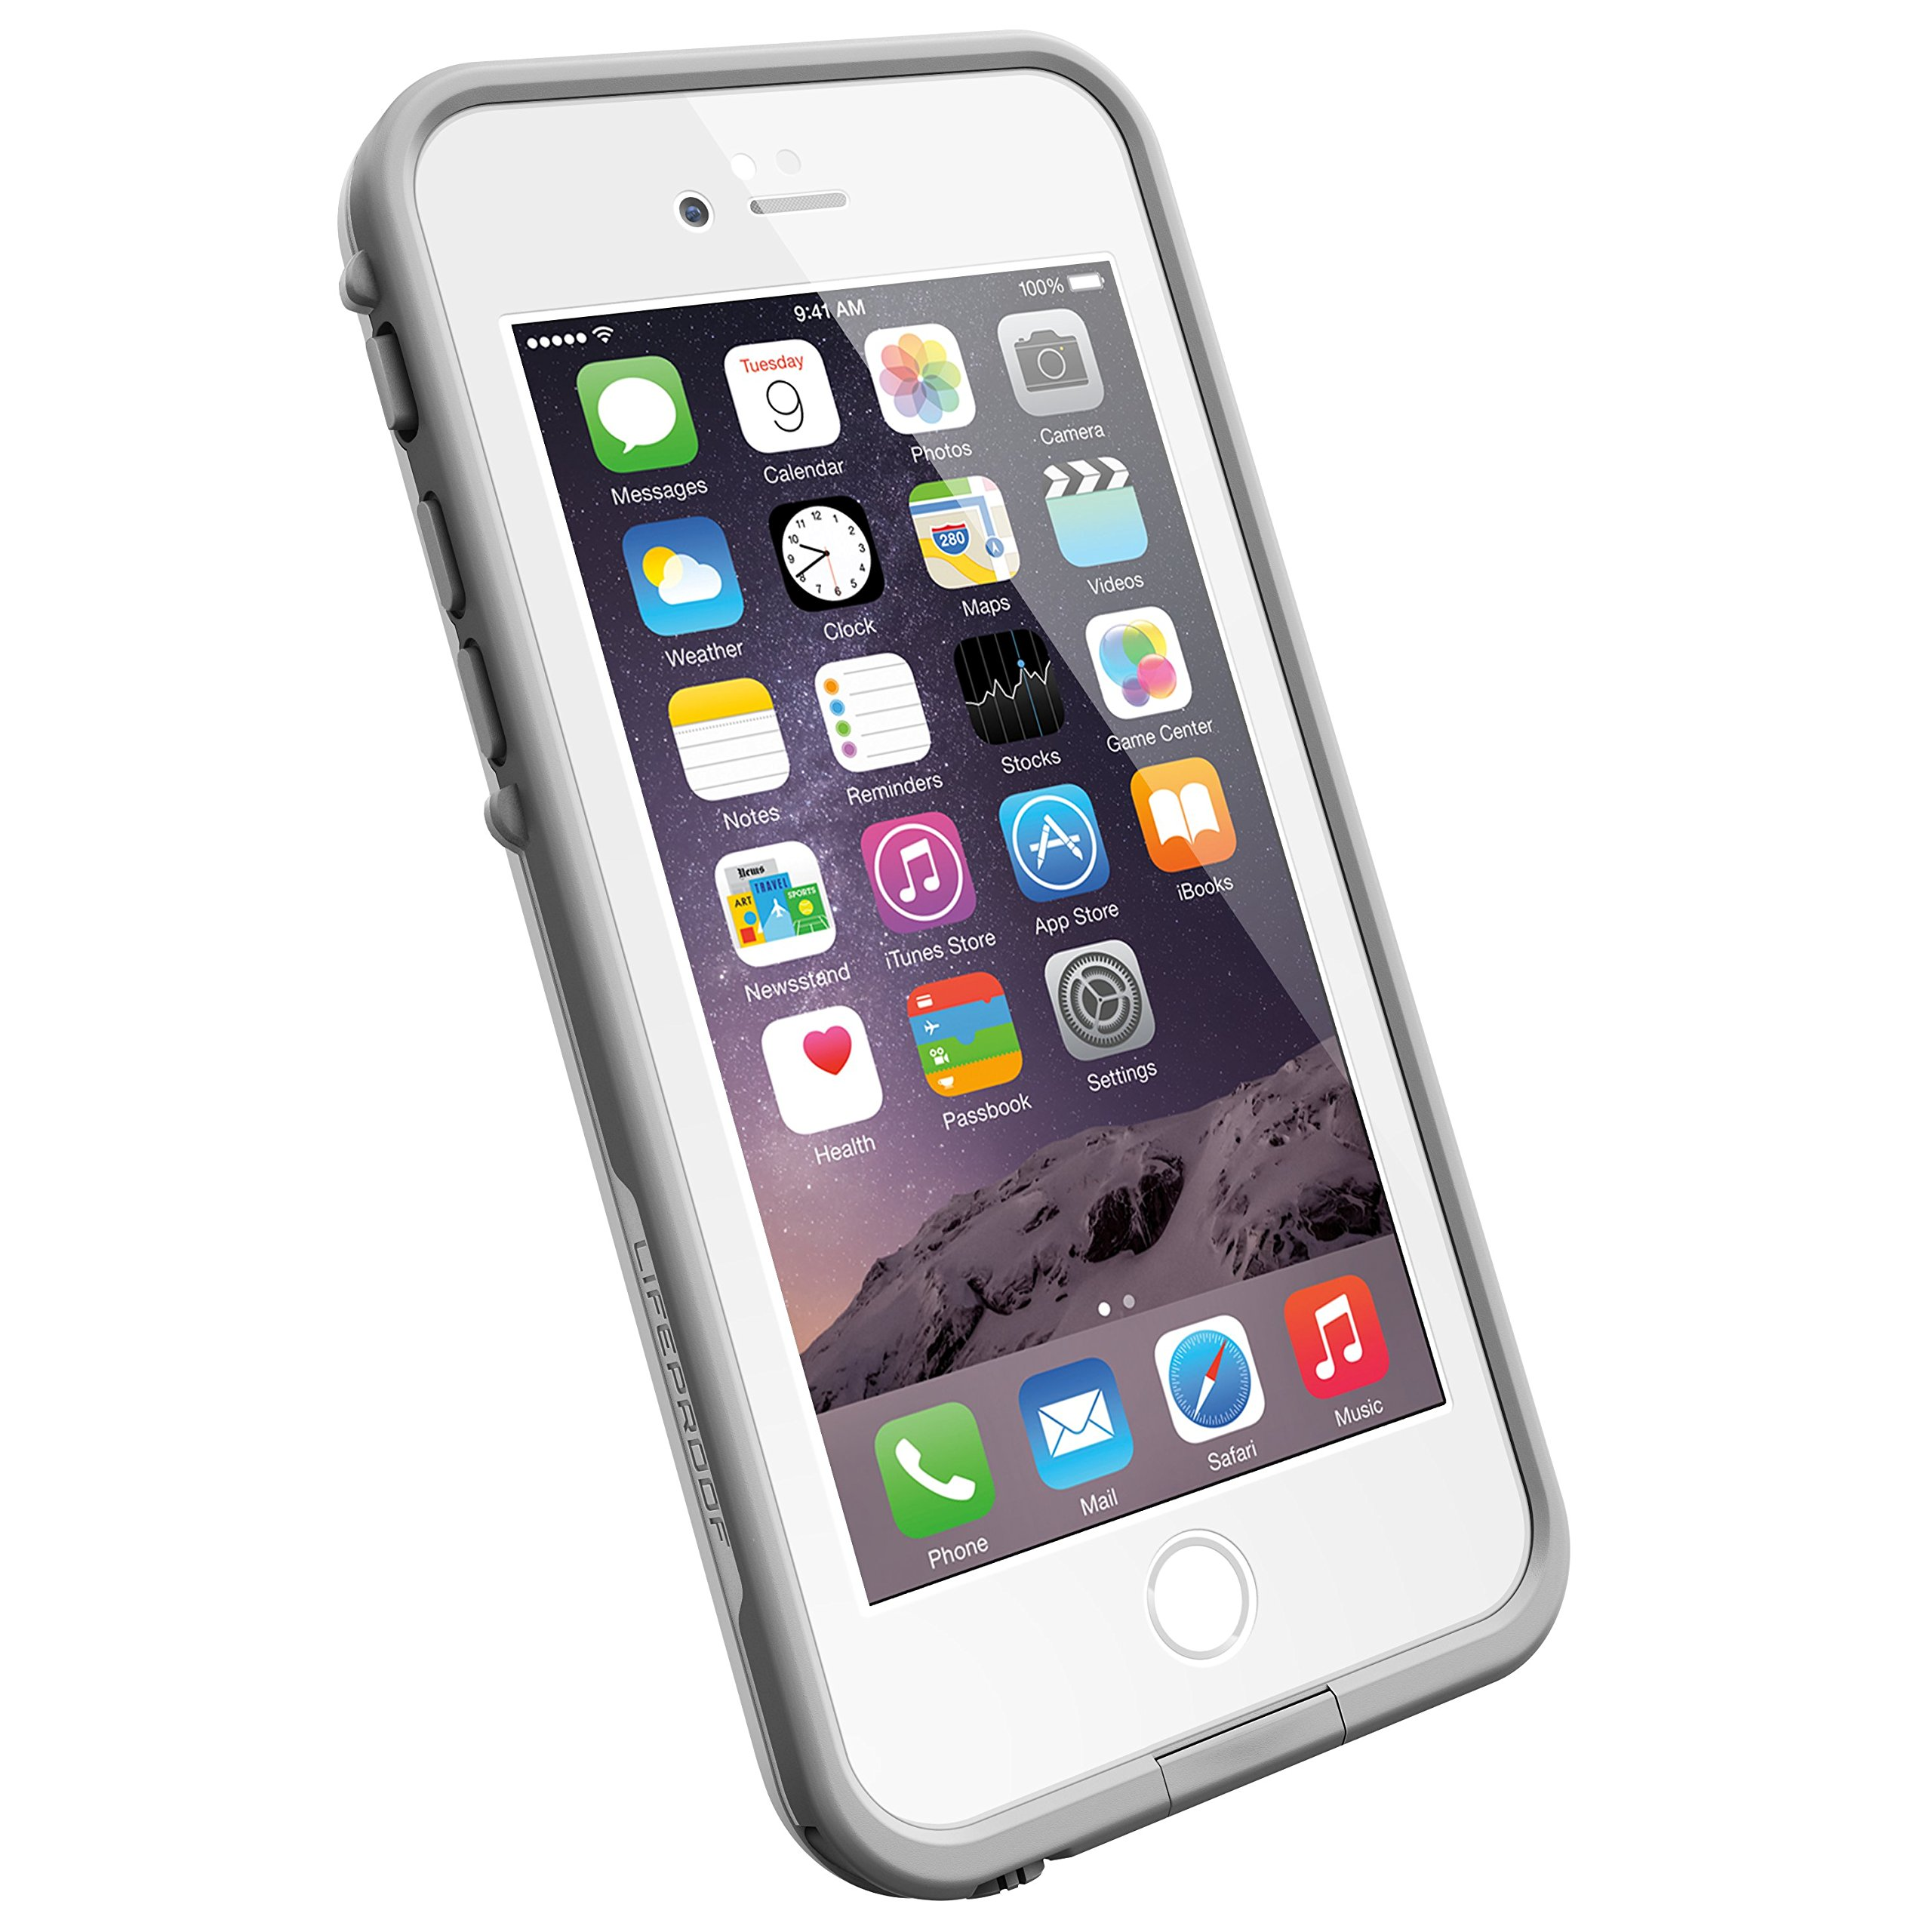 LifeProof FRE iPhone 6 ONLY Waterproof Case (4.7'' Version) - Retail Packaging - AVALANCHE (BRIGHT WHITE/COOL GREY)